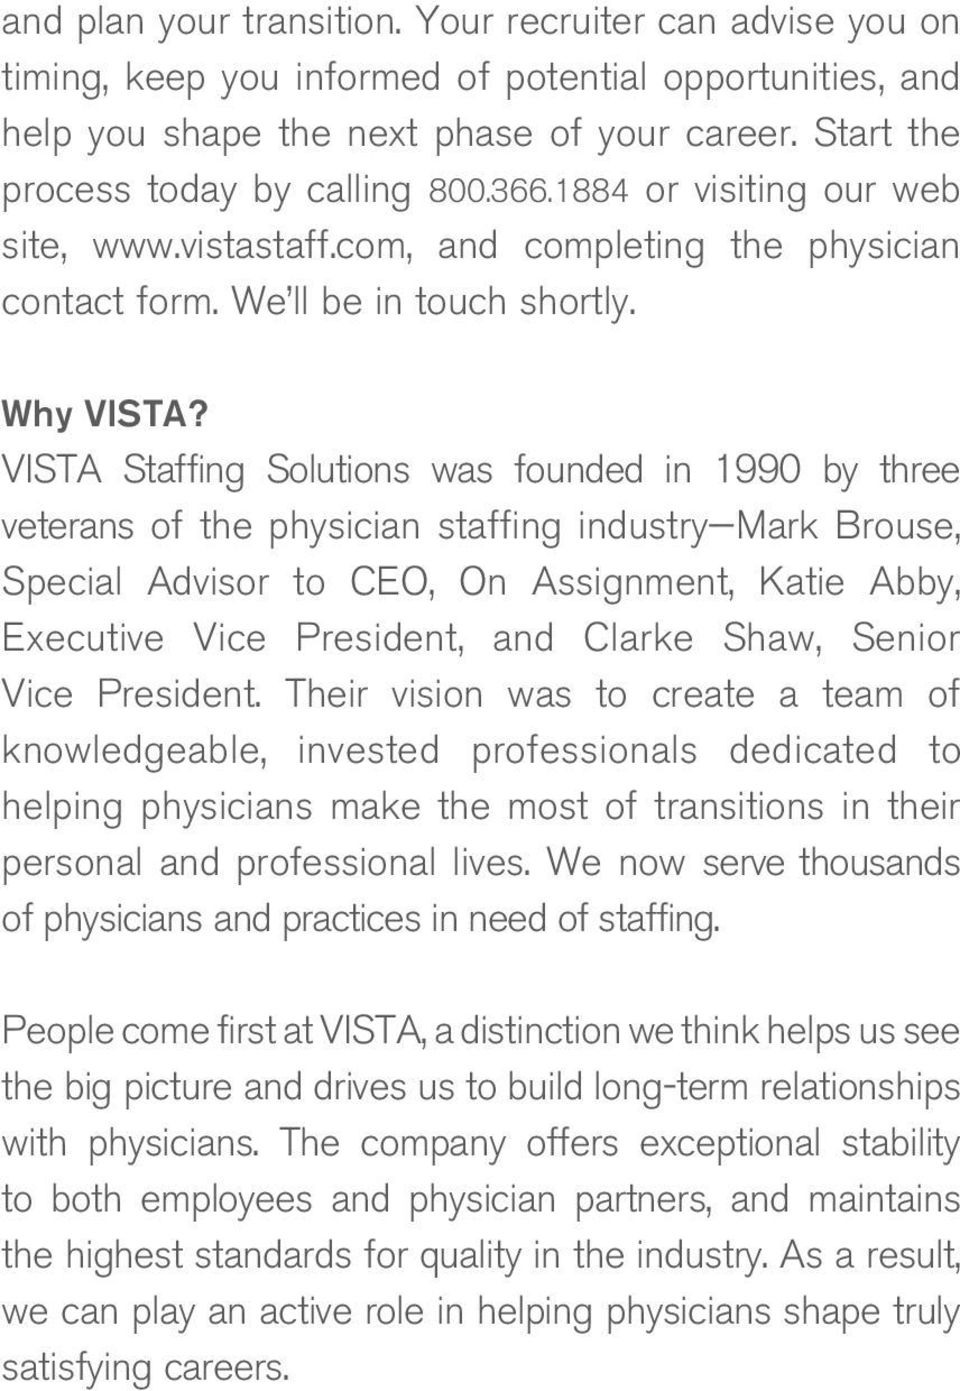 VISTA Staffing Solutions was founded in 1990 by three veterans of the physician staffing industry Mark Brouse, Special Advisor to CEO, On Assignment, Katie Abby, Executive Vice President, and Clarke